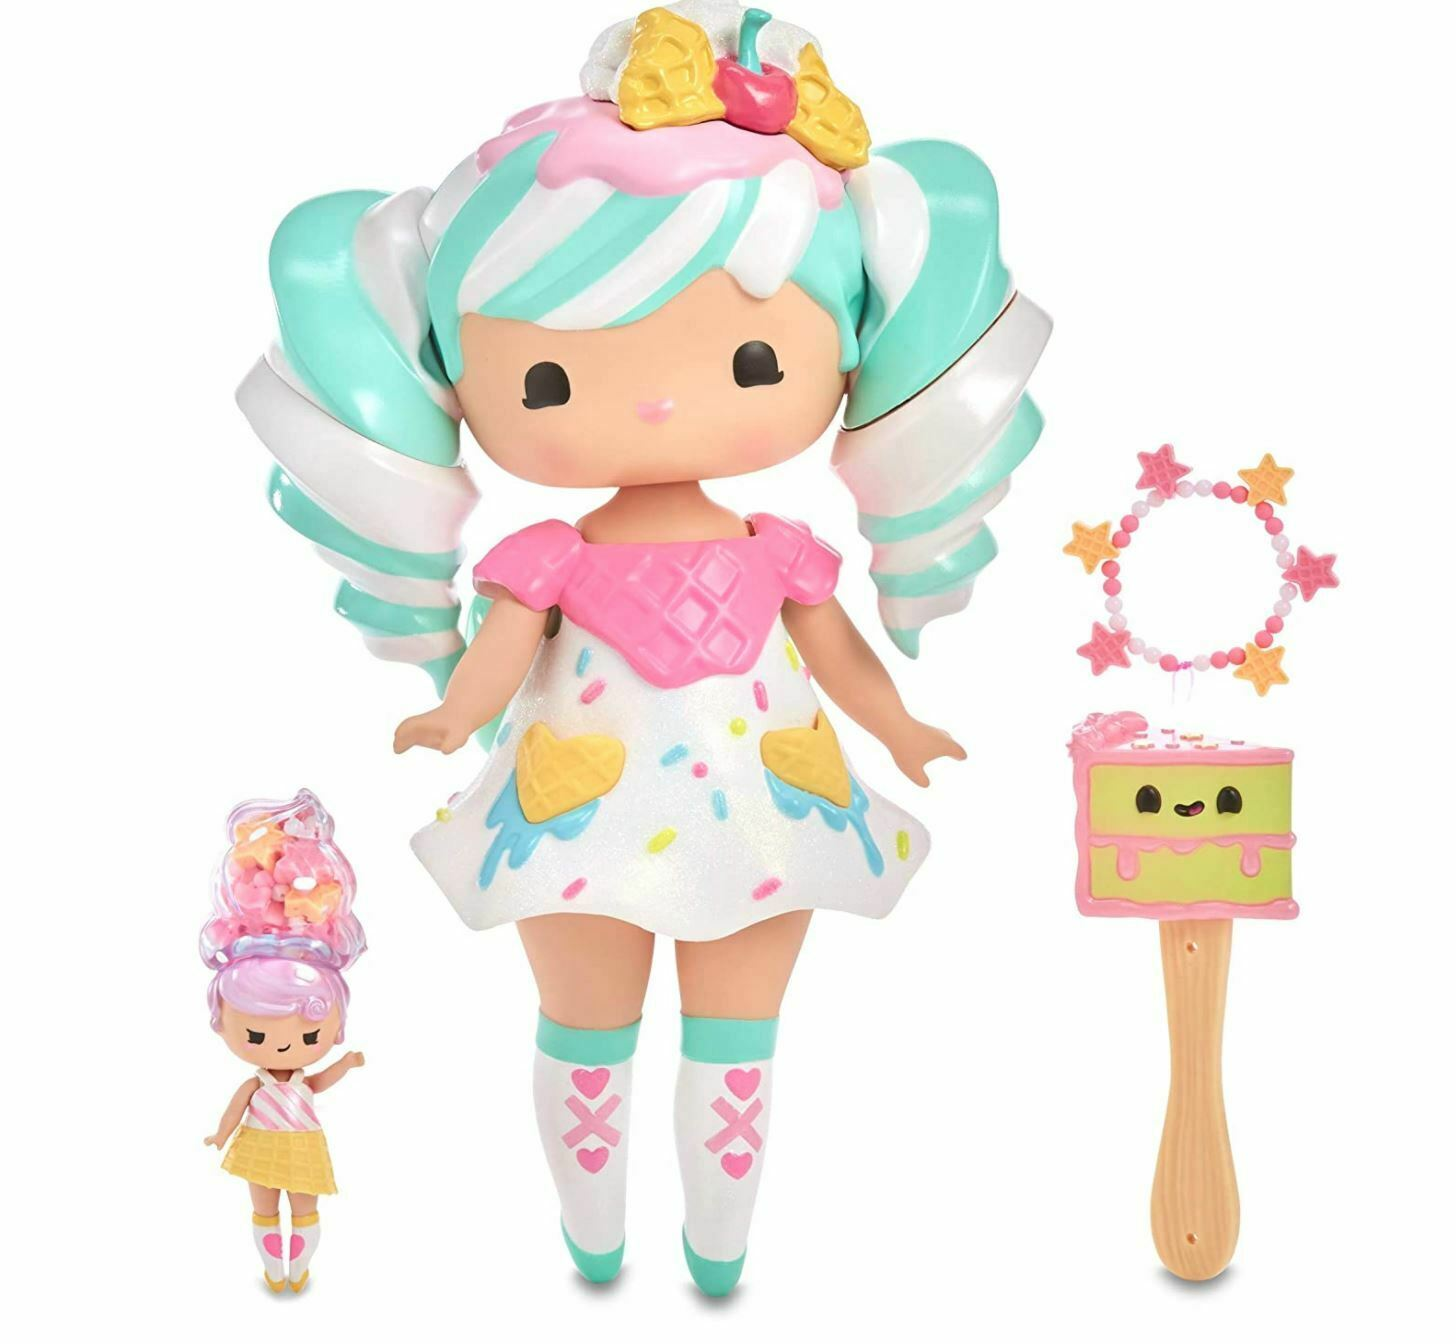 Primary image for MGA Entertainment Secret Crush Sundae Swirl 13-inch Doll & Mini Doll Winnie